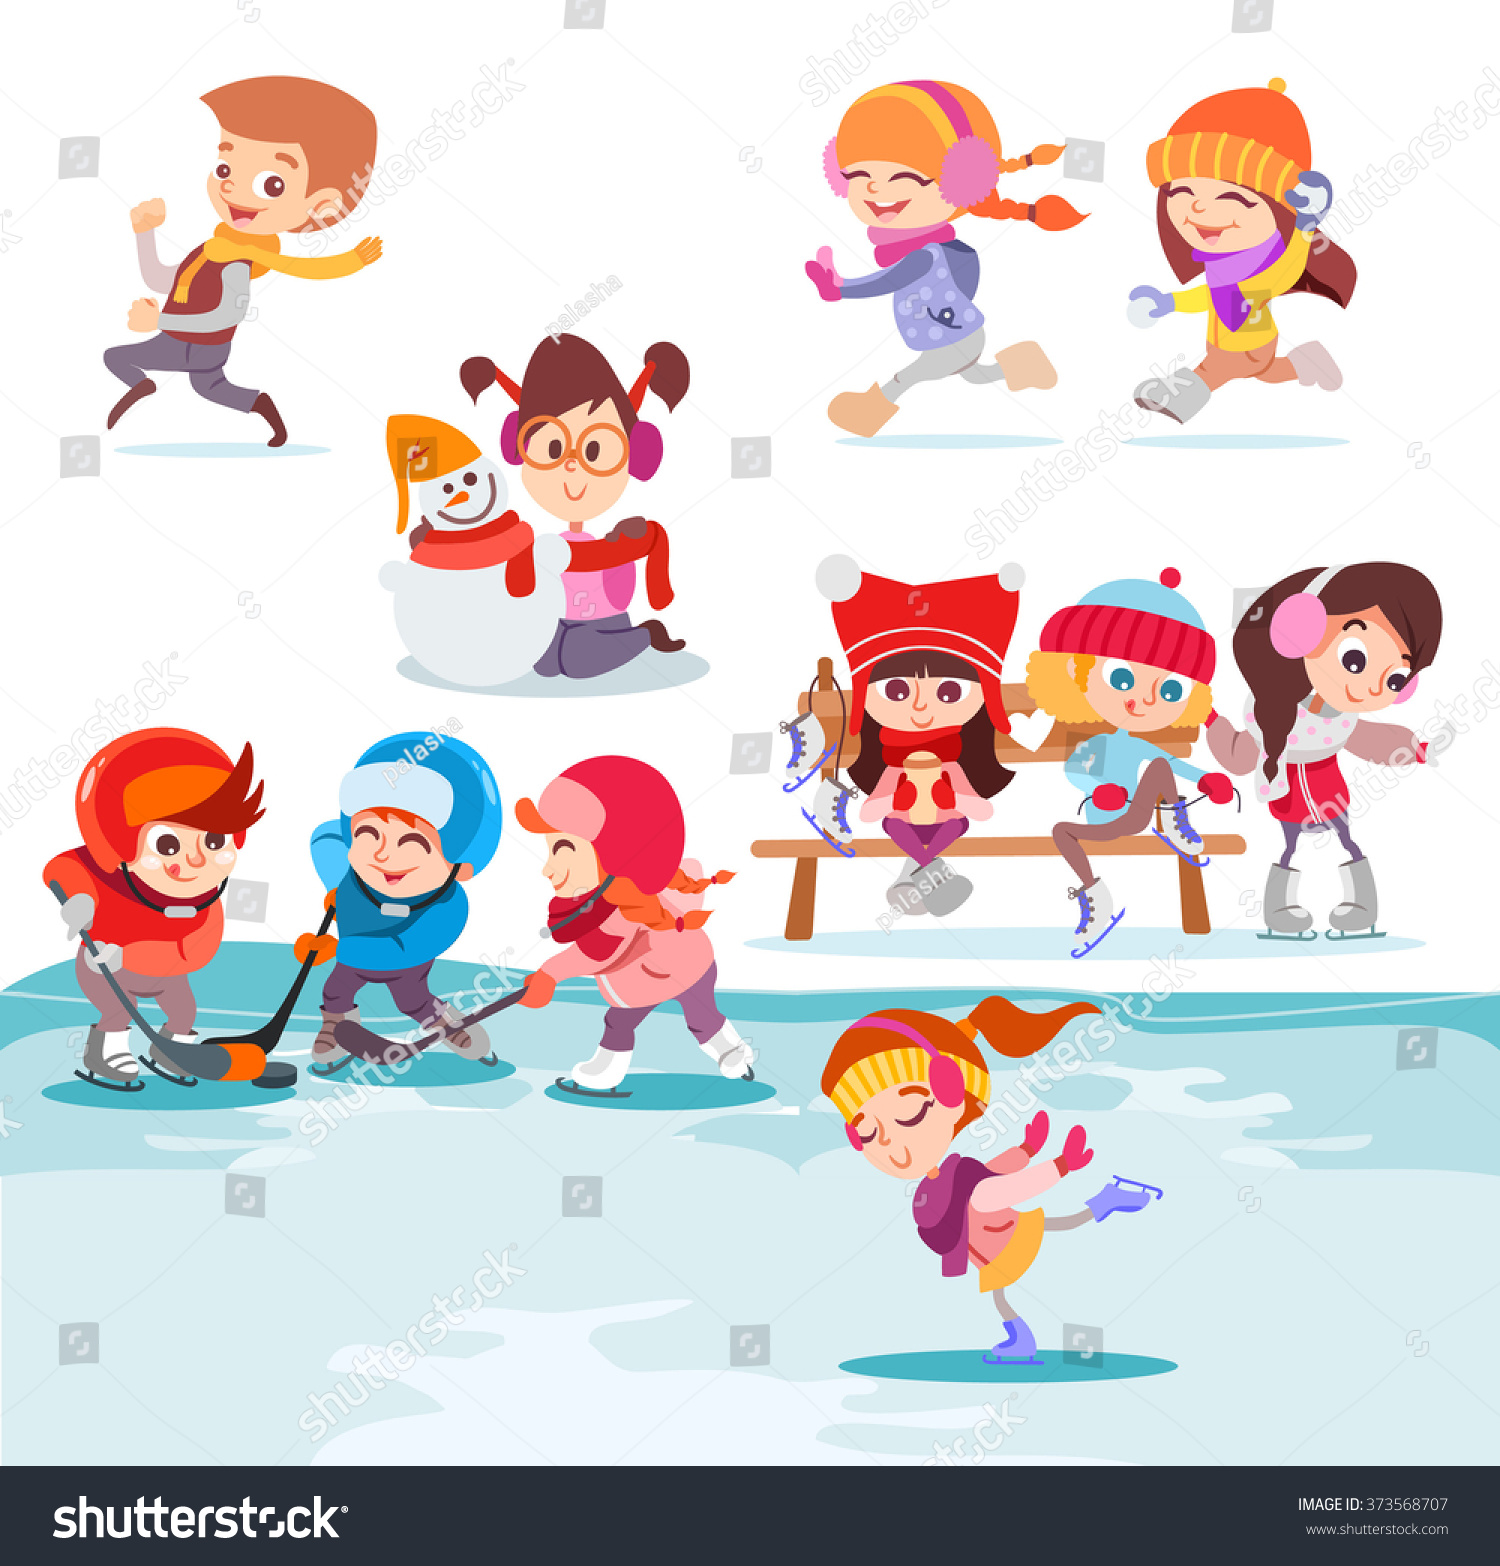 Illustration Groups Cute Cartoon Kids Playing Stock Vector Royalty Free 373568707